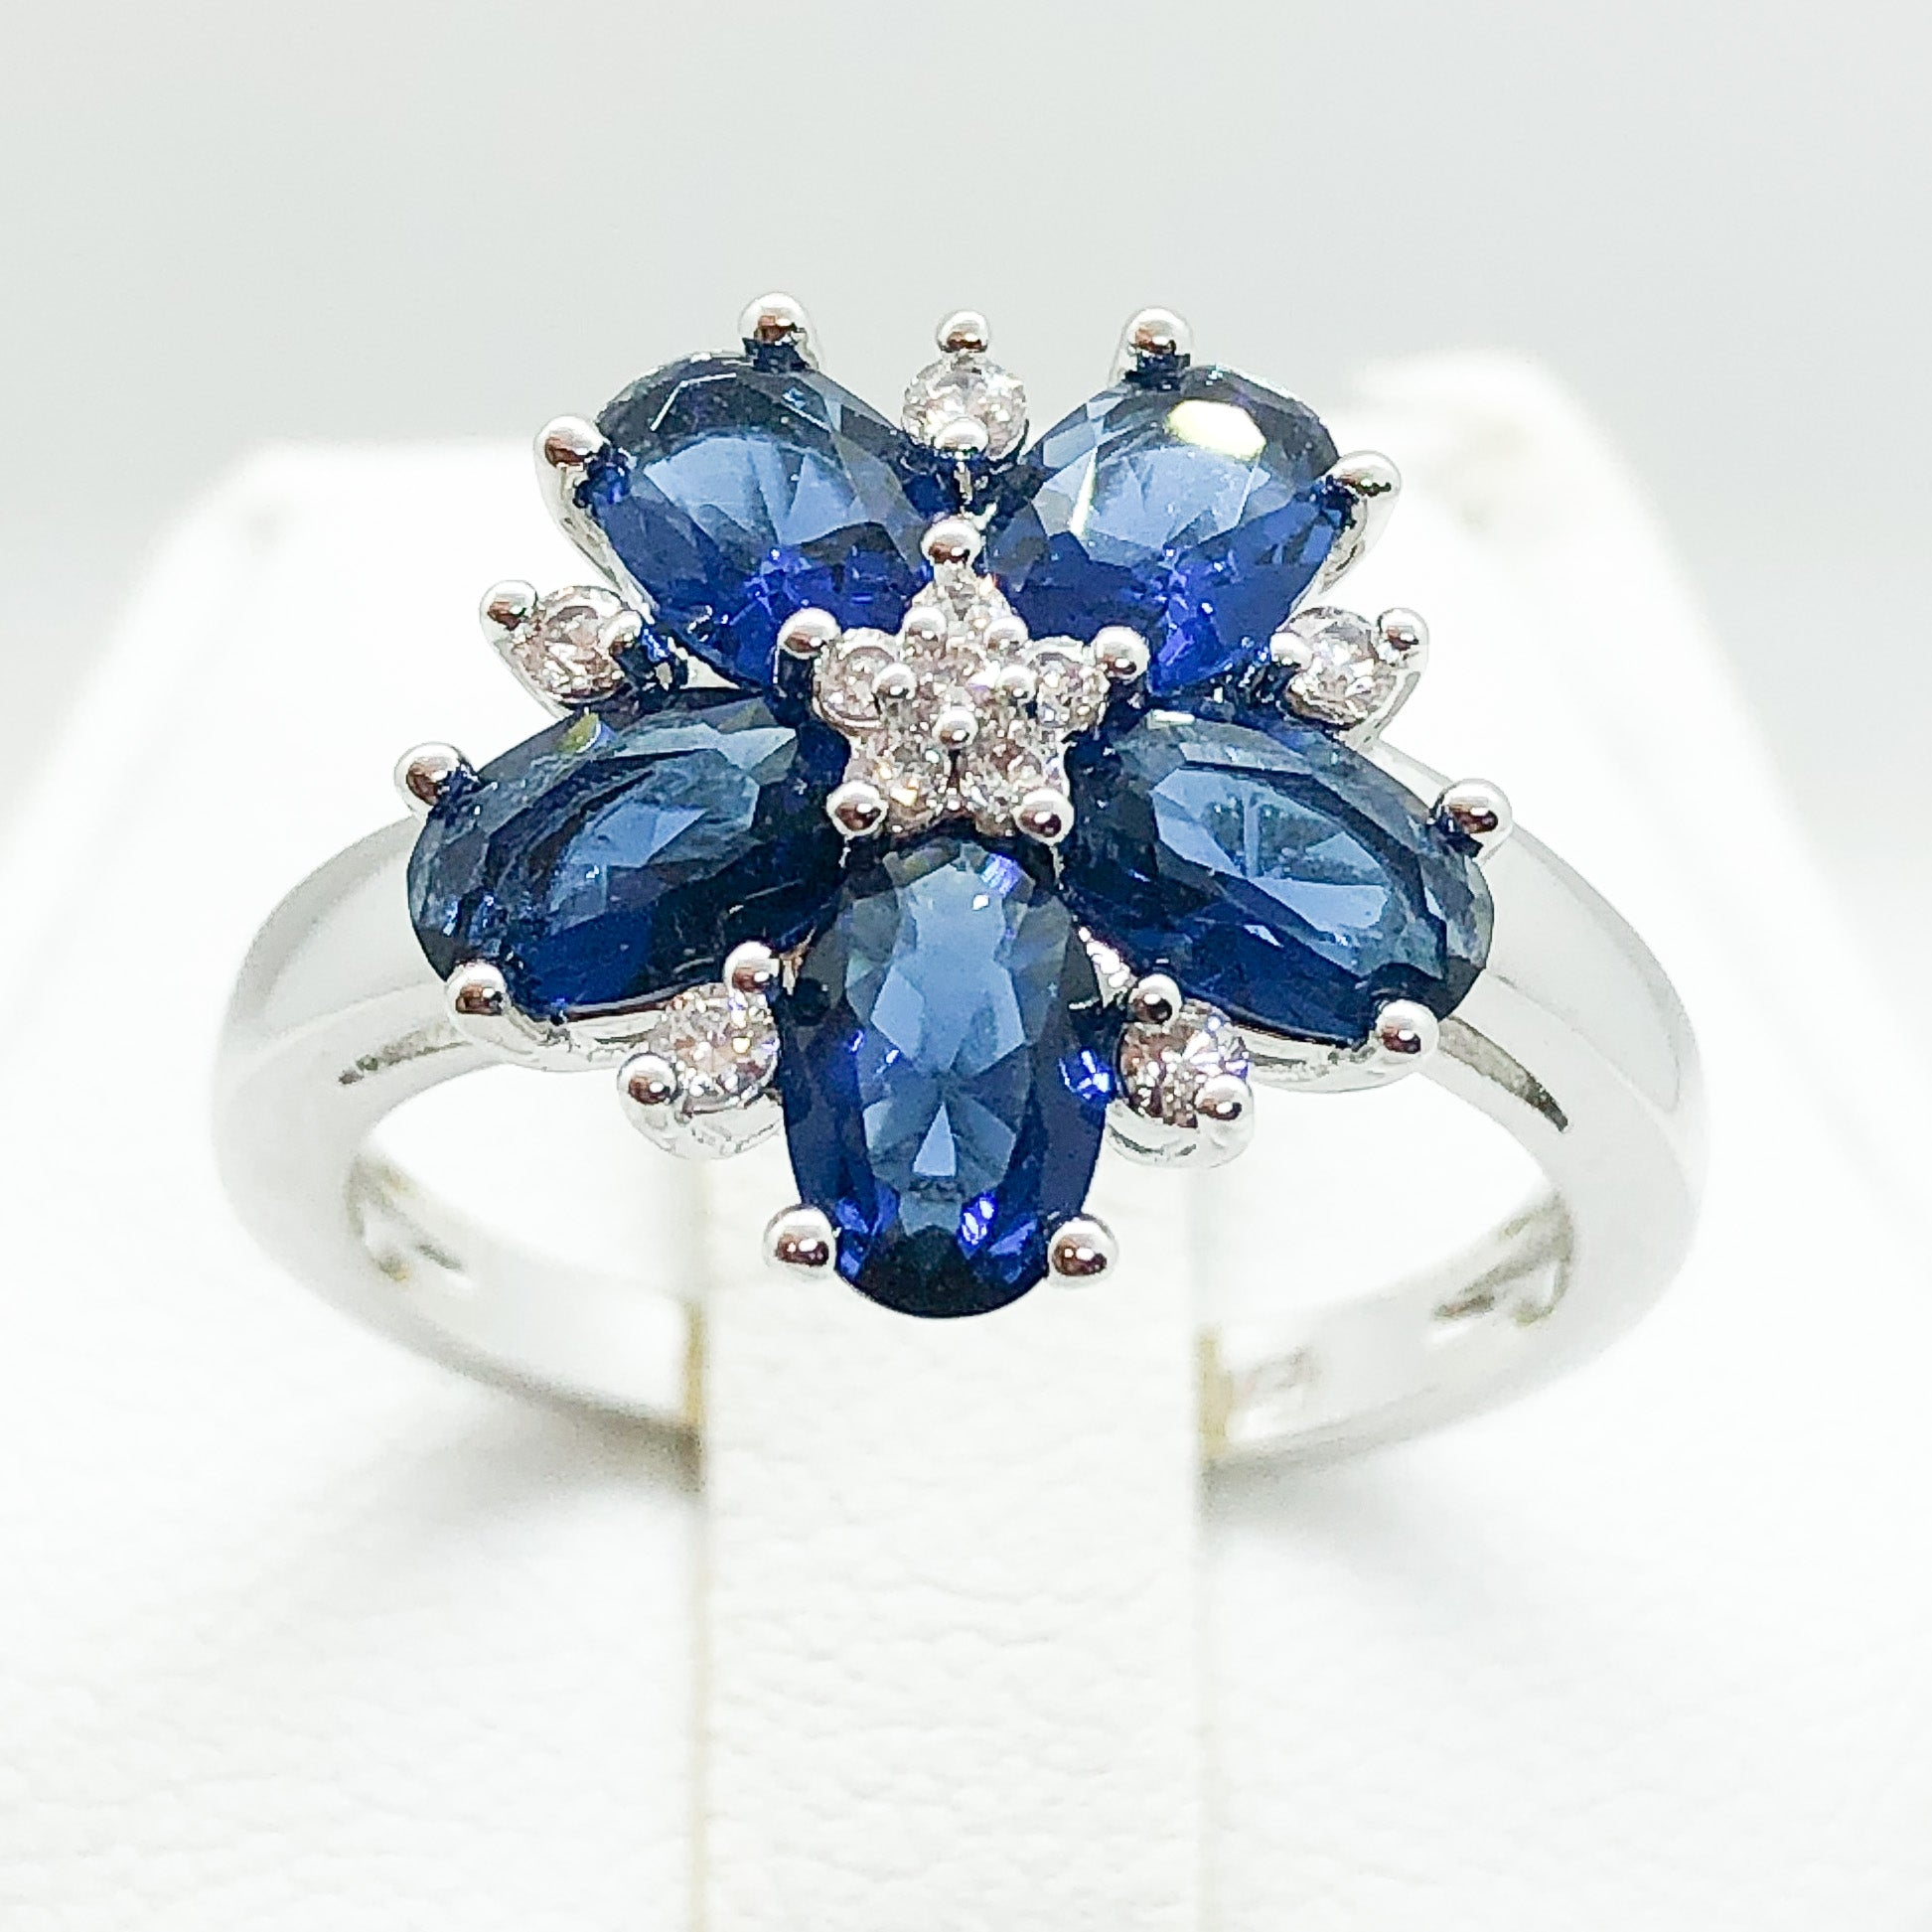 ID:R7166 Women 18K White Gold GF Fashion-Forward Jewelry Sapphire and Clear Stone Floral Design Ring